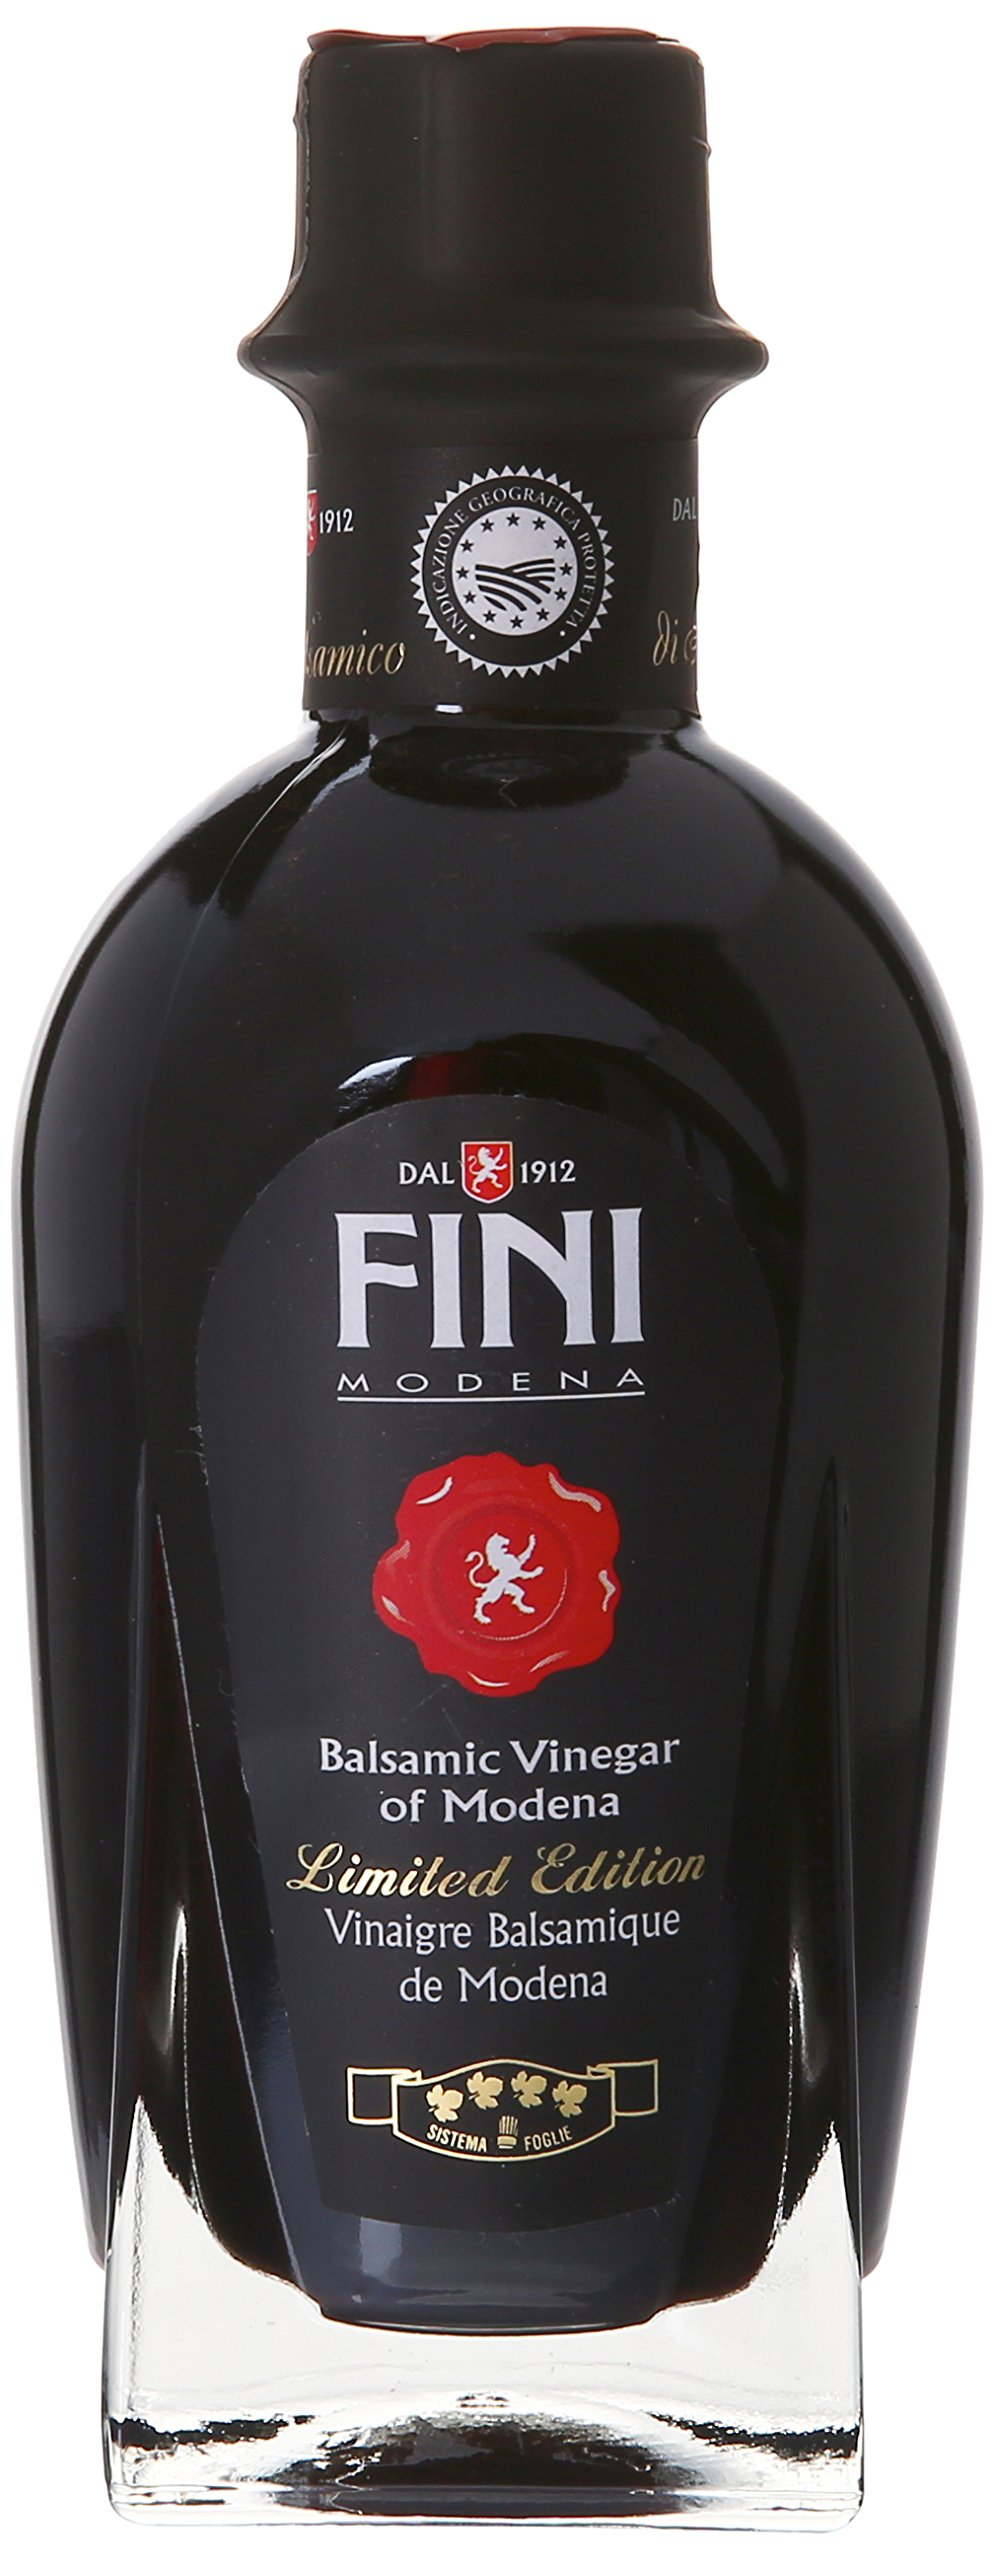 Fini Balsamic Vinegar Gift Box, 250 Mililiter 1 Limited addition bottle of Fini Balsamic Vinegar of Modena in a stylish gift box Makes for a unique and flavorful contribution to salad dressings or your favorite Italian dishes Perfect gift for the foodie in your life